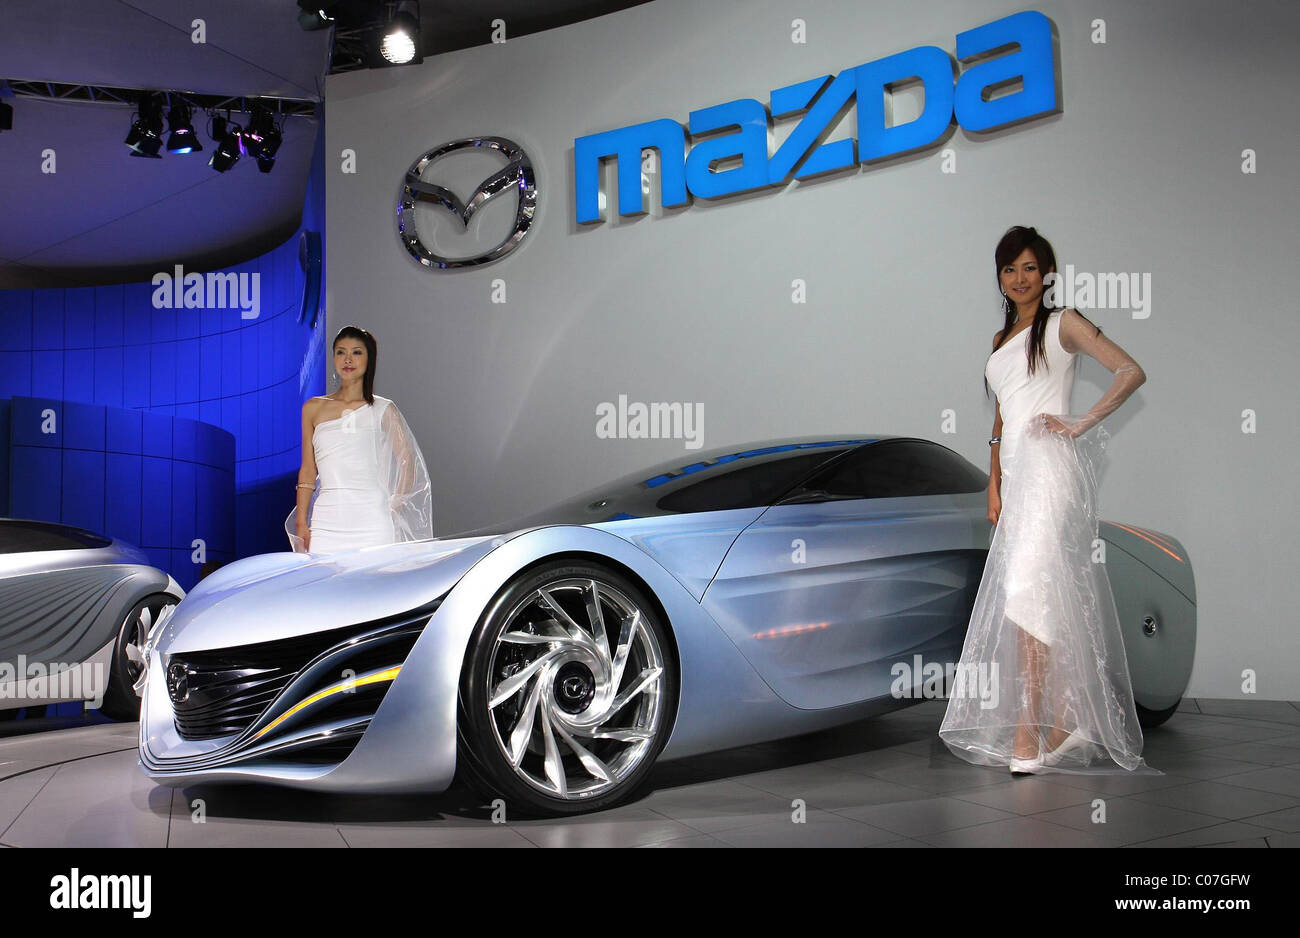 https://c8.alamy.com/comp/C07GFW/mazda-taiki-mazda-is-to-show-a-concept-car-called-taiki-at-the-tokyo-C07GFW.jpg